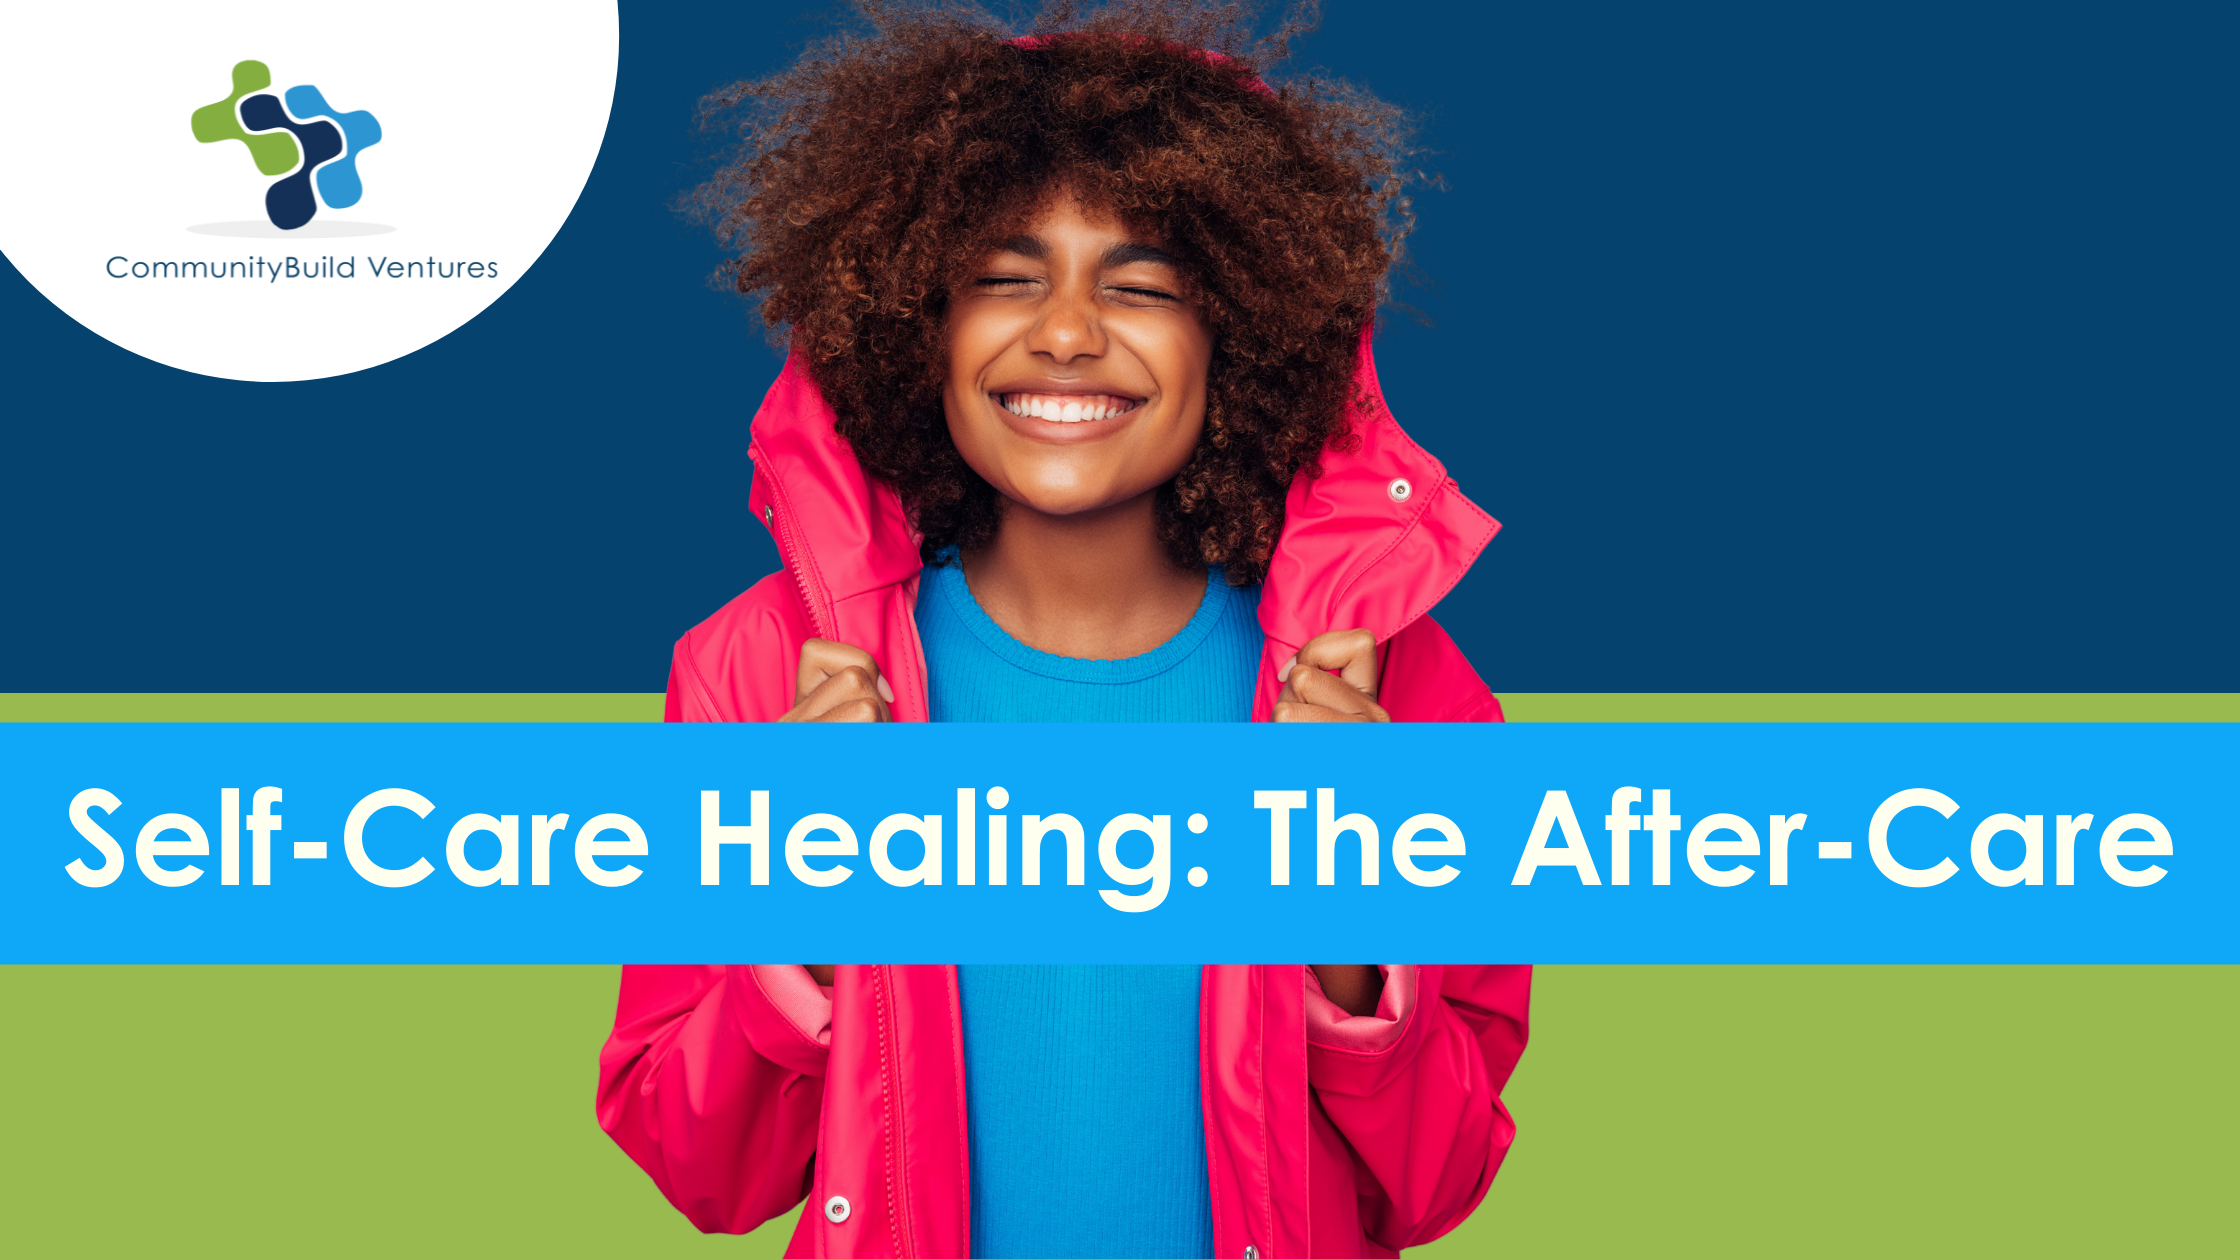 Self-Care Healing: The After-Care